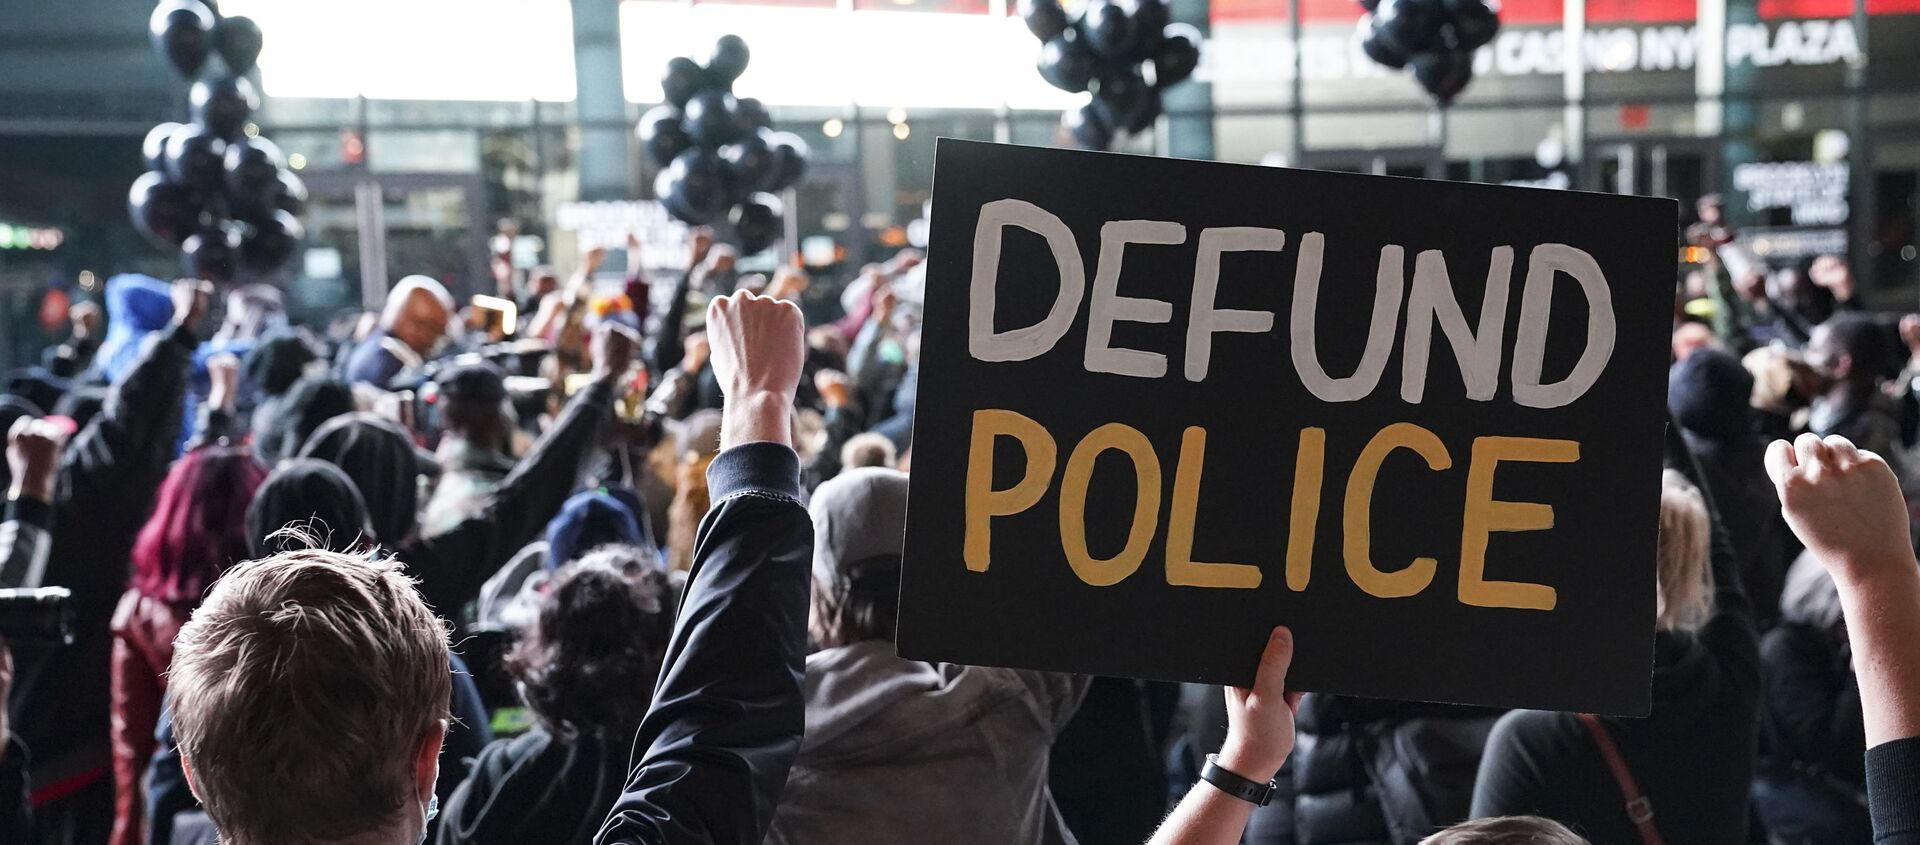 In this 14 October 2020 file photo, a protester holds a sign that reads Defund Police during a rally for the late George Floyd outside Barclays Center in New York - Sputnik International, 1920, 10.07.2021